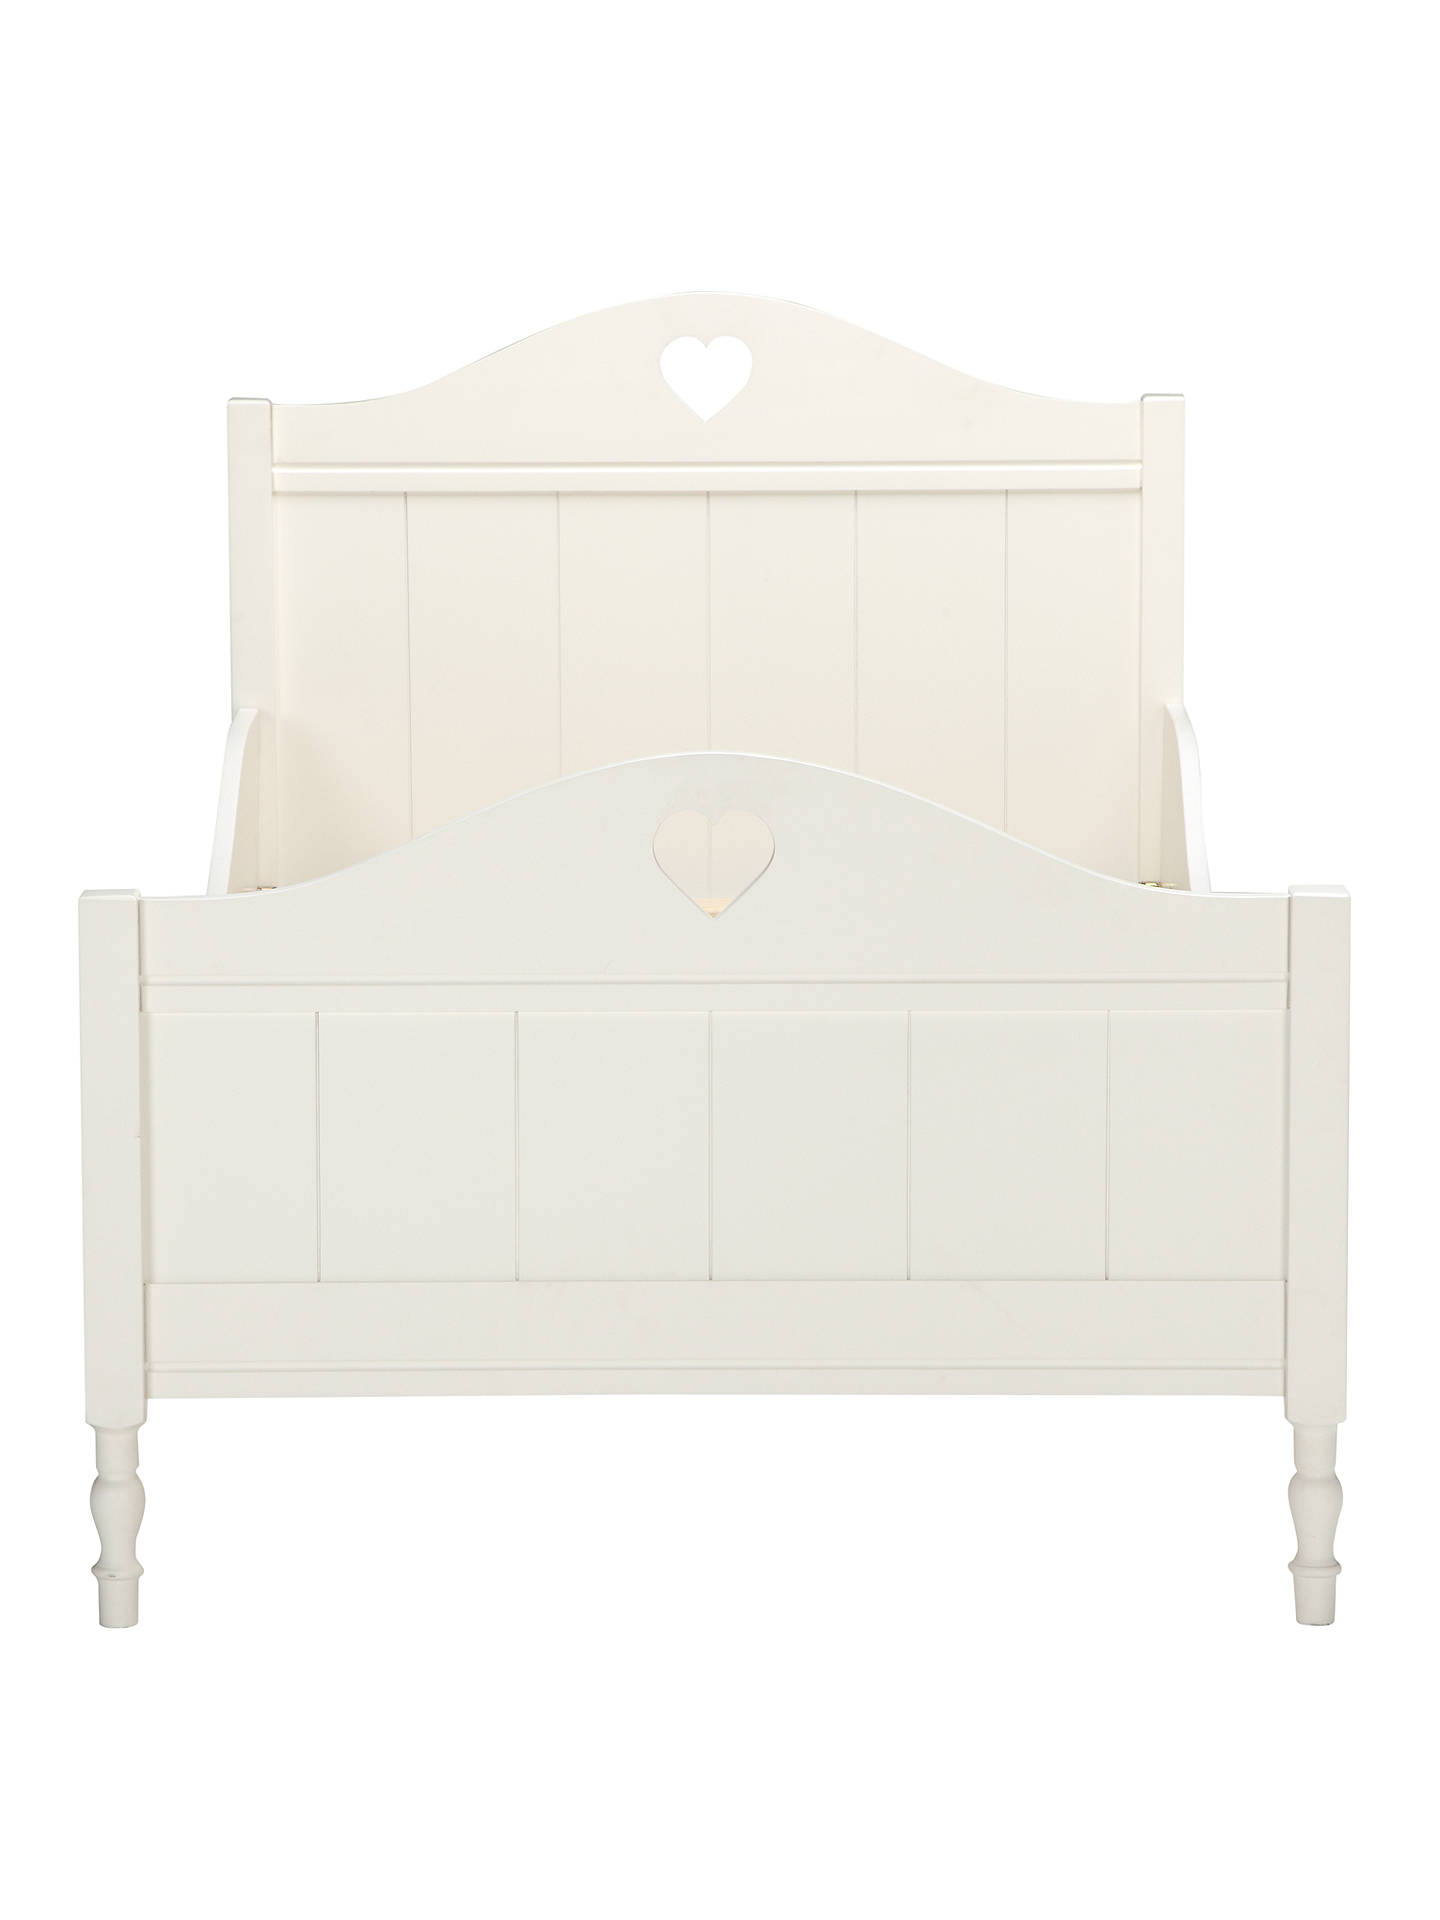 Little Home At John Lewis Victoria Bed Frame Single White